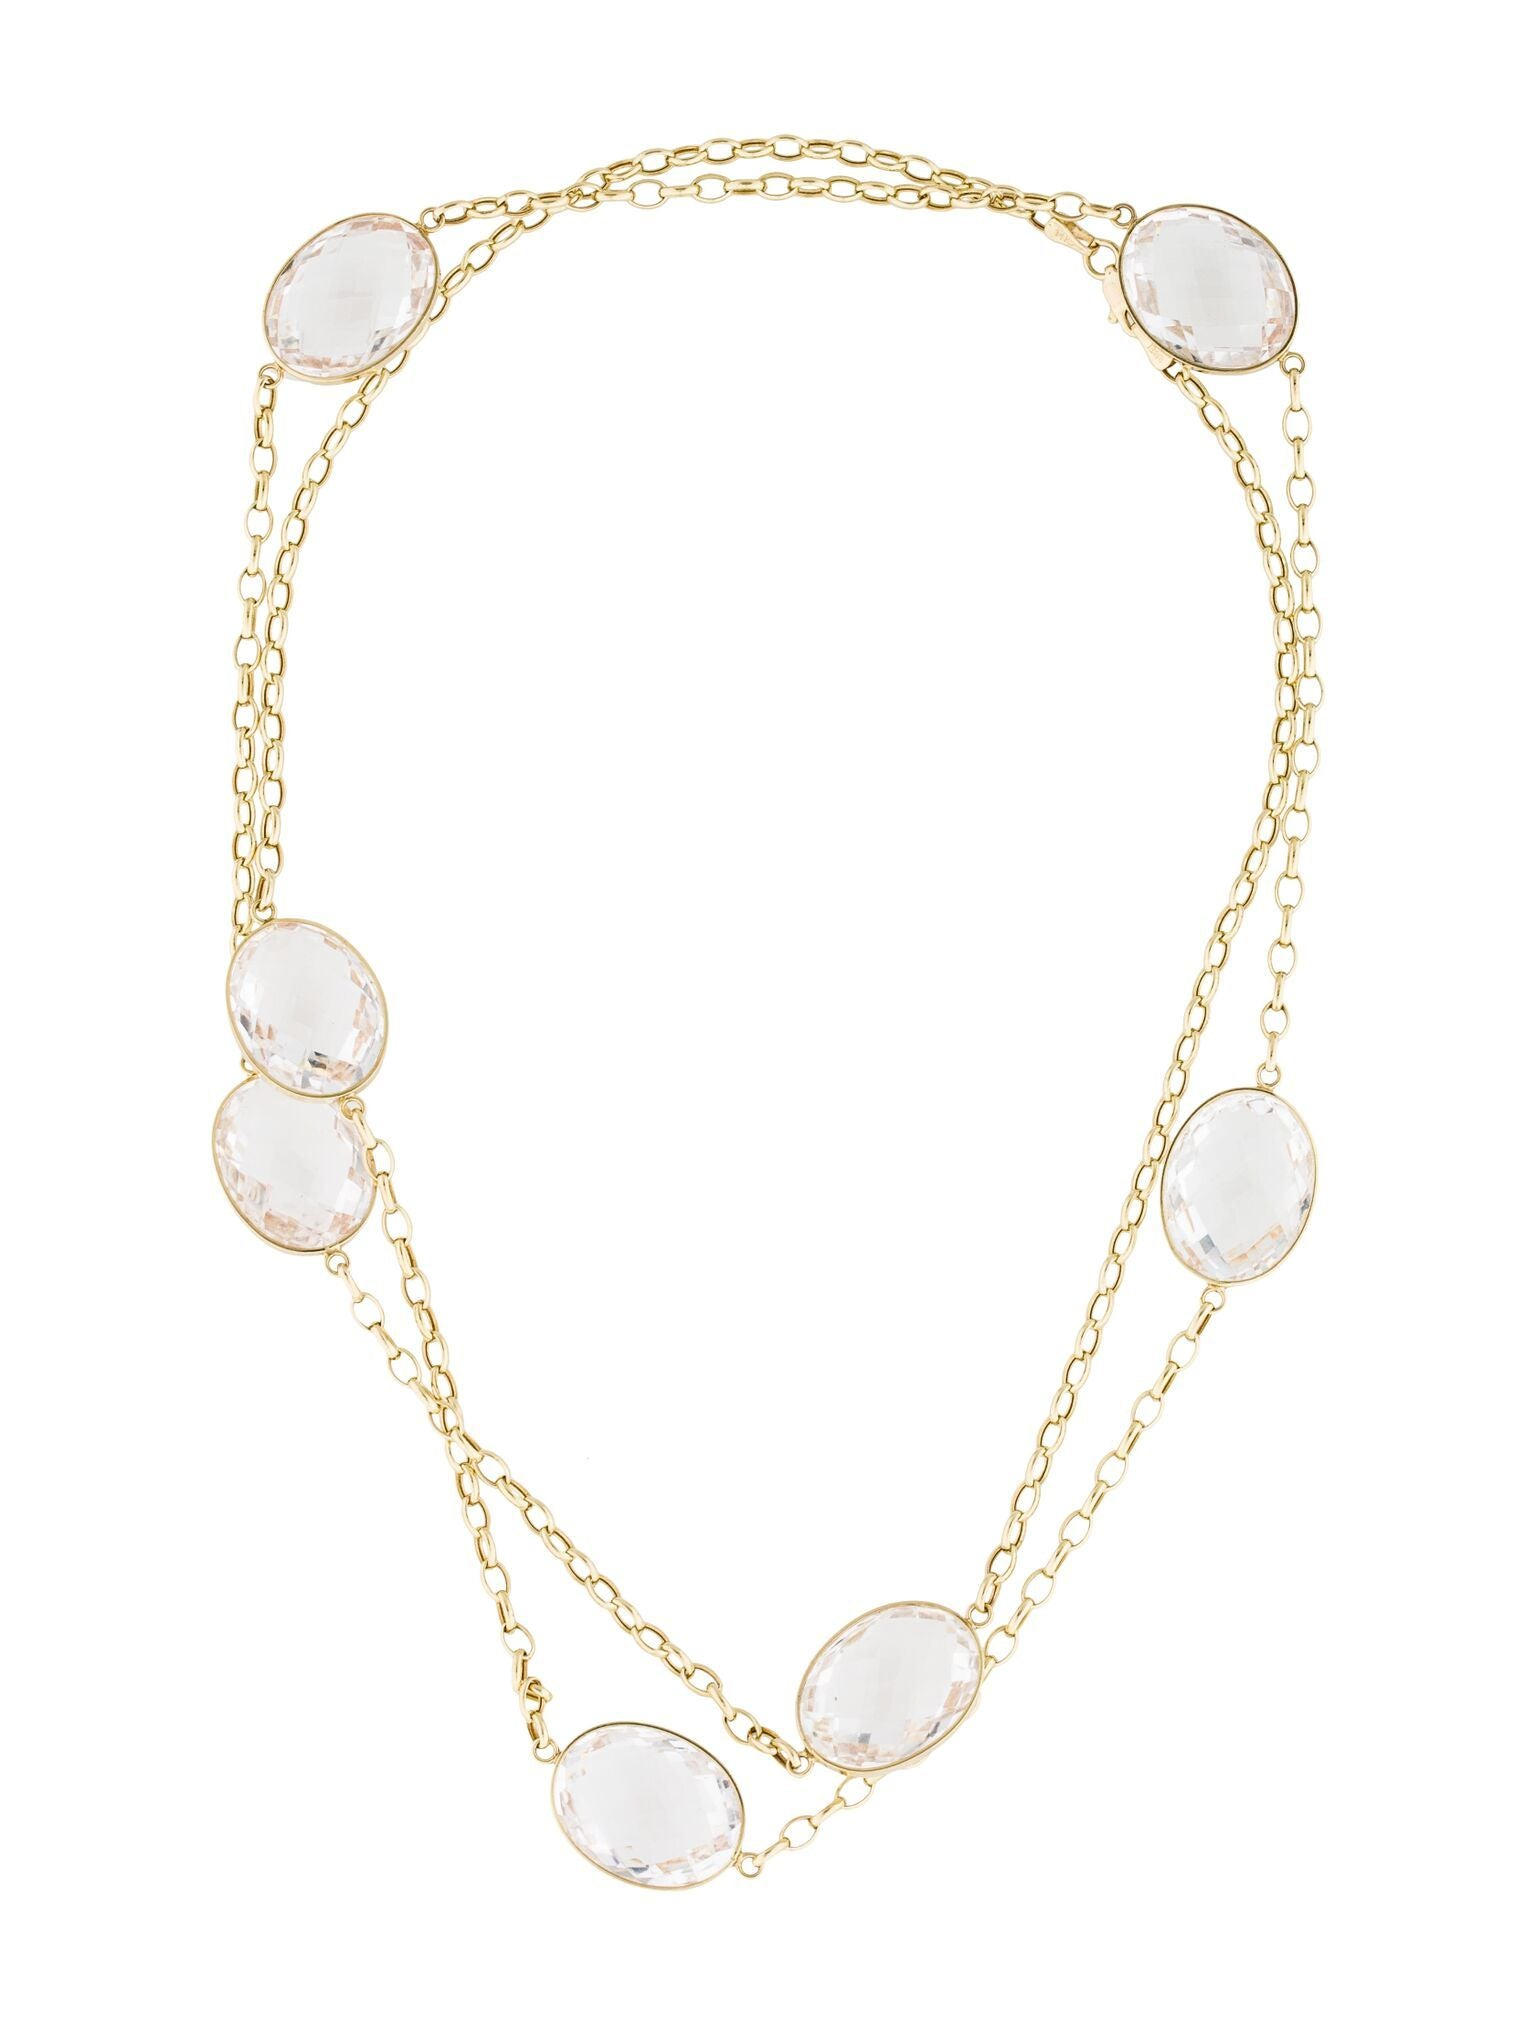 18k Gold Clear Quartz Long Necklace